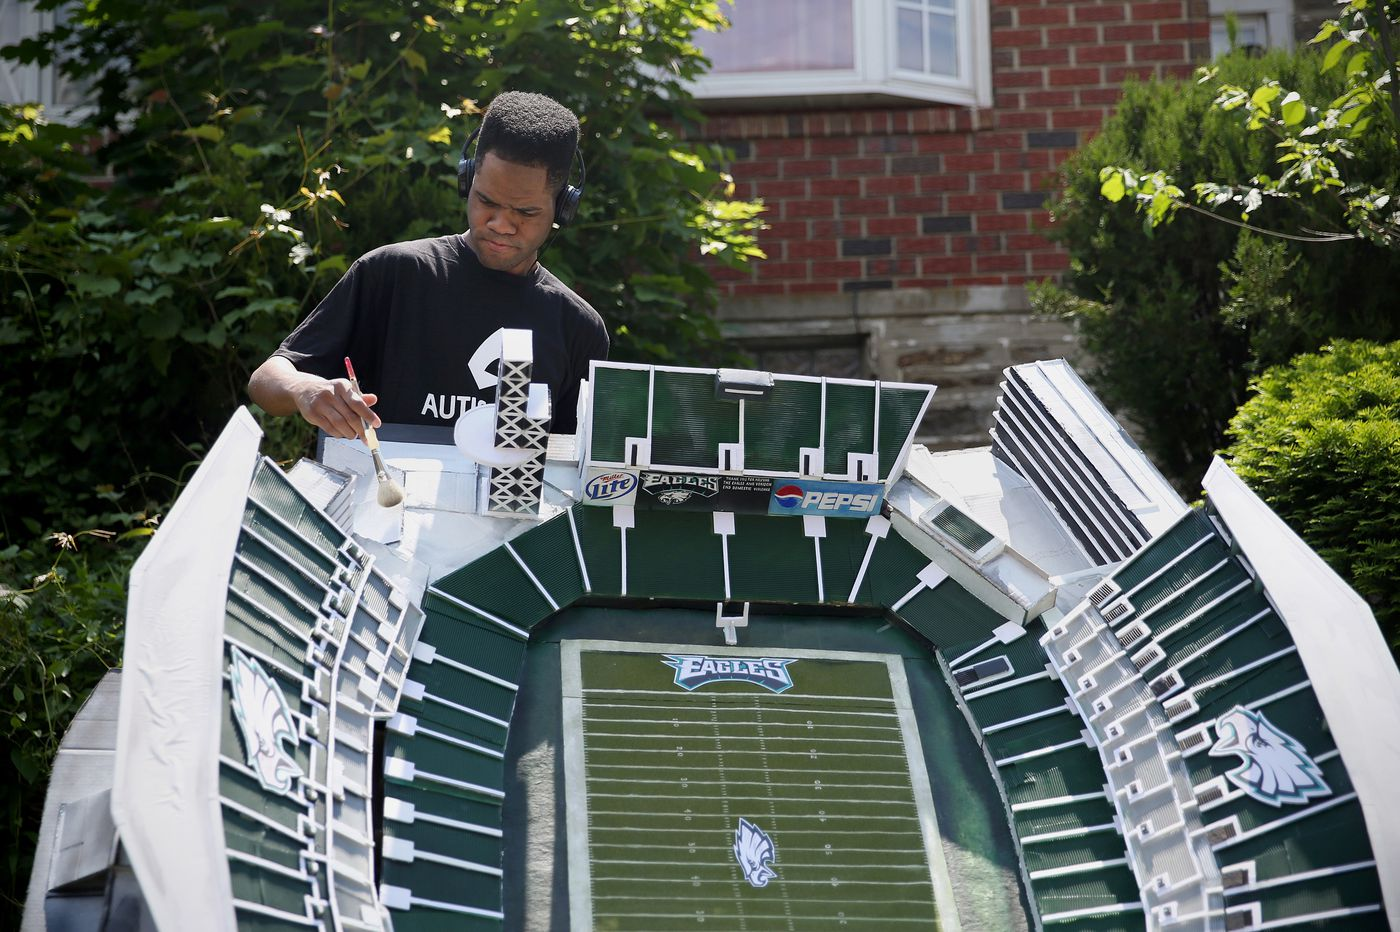 Artist with autism creates Lincoln Financial Field sculpture for Eagles Autism Challenge